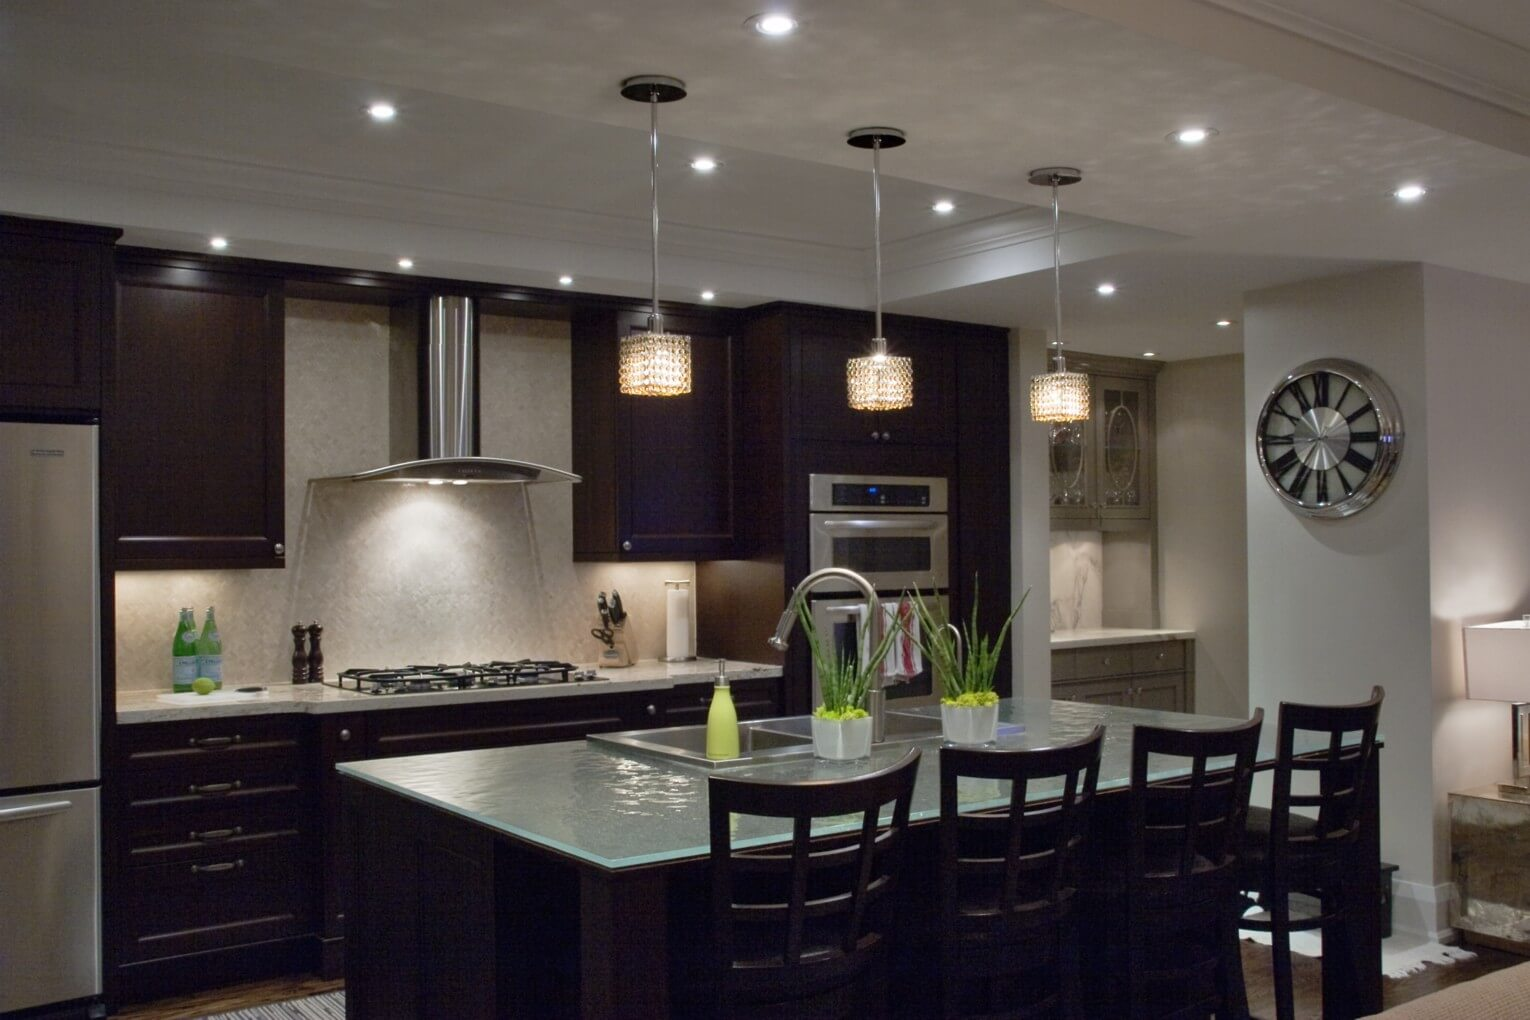 Maria 5 Light Kitchen Island Pendant Layered Lighting With Crystal Chandeliers - Doing It The